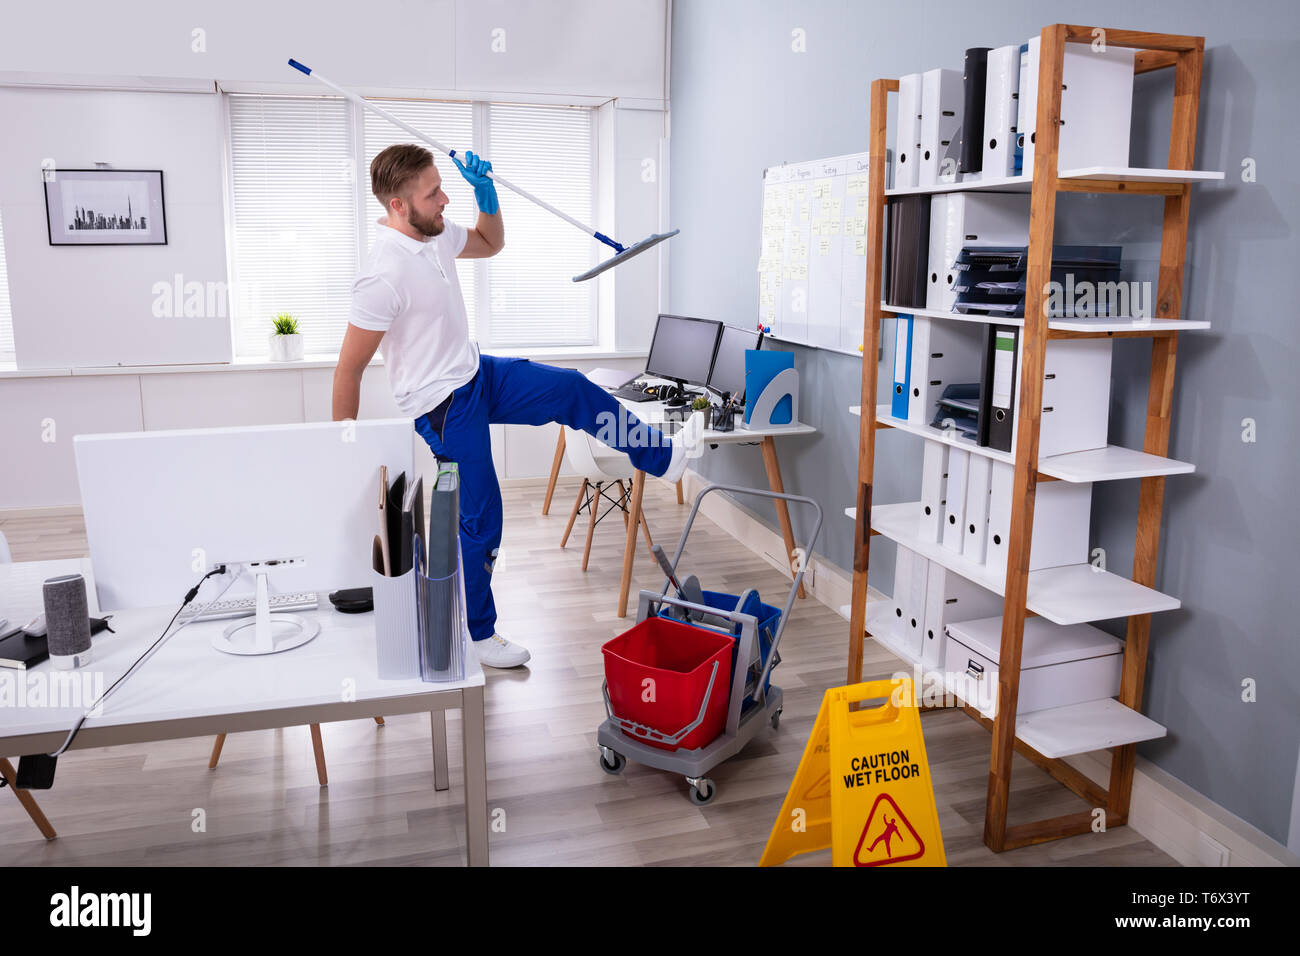 Man Janitor Slipping While Mopping Floor In Modern Office - Stock Image